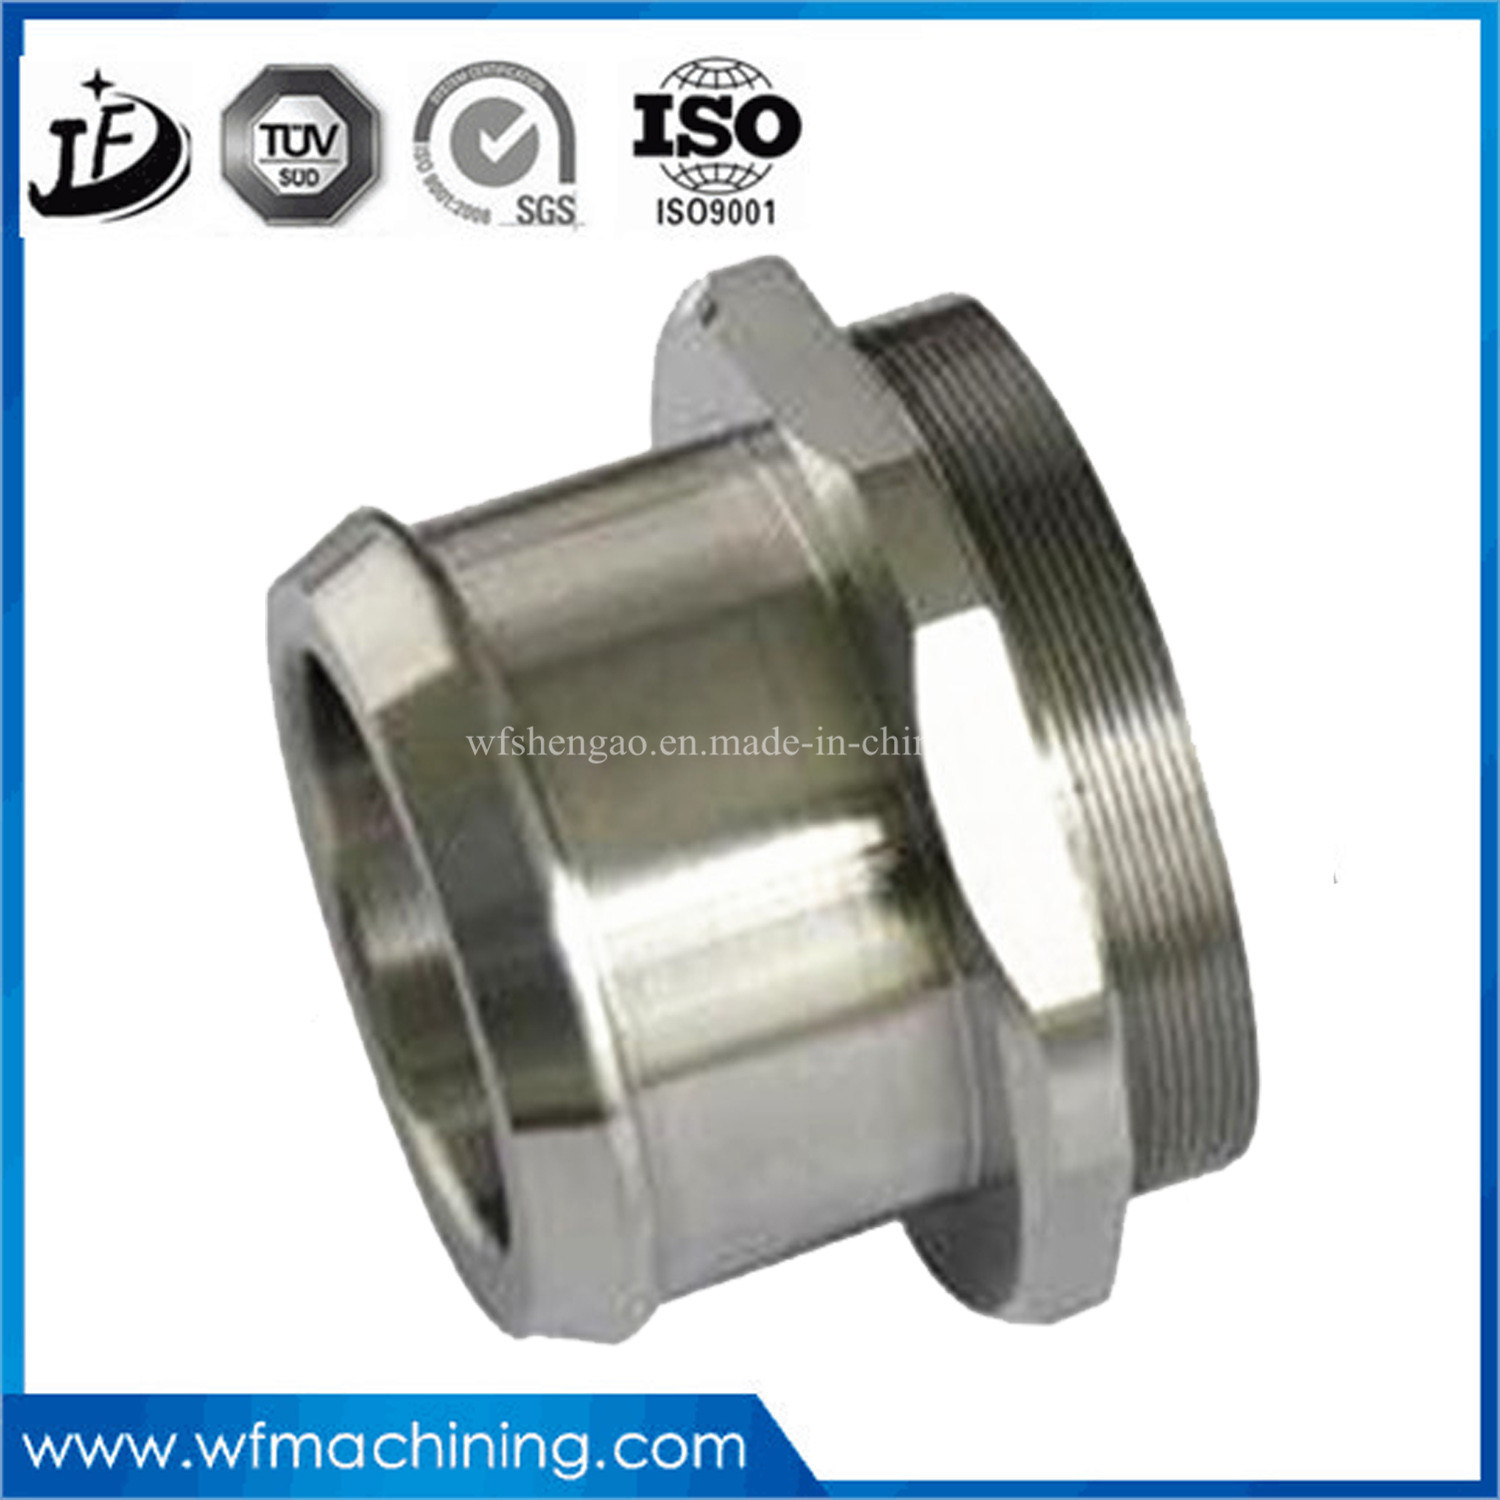 Customized Chrome Plating Steel Precision CNC Machining Forged Steel Product with Casting & Machining